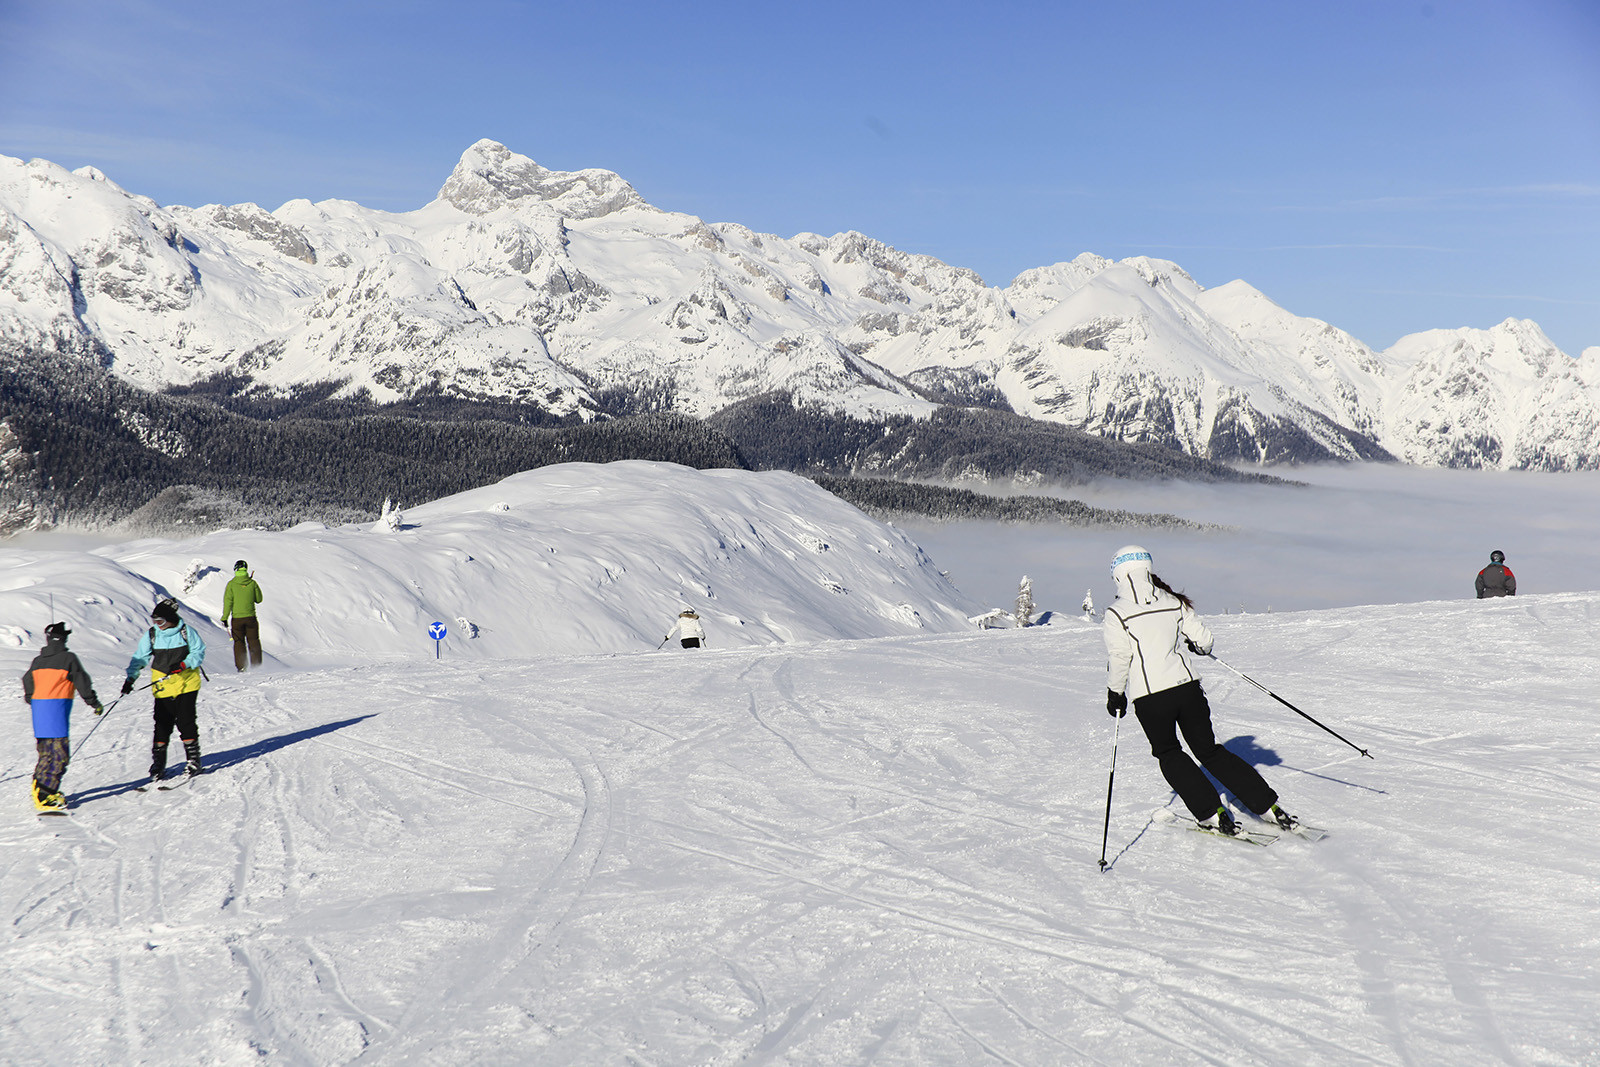 joys of winter: slovenia's best ski resorts